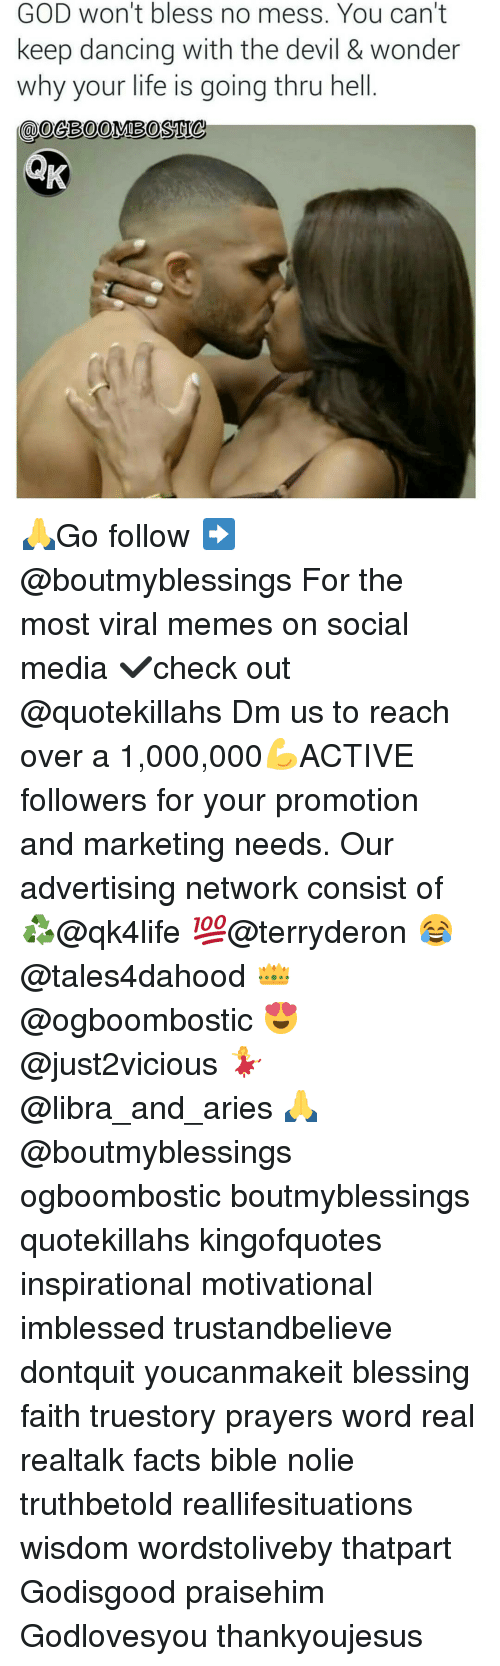 Advertise Network: GOD won't bless no mess. You can't  keep dancing with the devil & wonder  why your life is going thru hell 🙏Go follow ➡@boutmyblessings For the most viral memes on social media ✔check out @quotekillahs Dm us to reach over a 1,000,000💪ACTIVE followers for your promotion and marketing needs. Our advertising network consist of ♻@qk4life 💯@terryderon 😂@tales4dahood 👑@ogboombostic 😍@just2vicious 💃@libra_and_aries 🙏@boutmyblessings ogboombostic boutmyblessings quotekillahs kingofquotes inspirational motivational imblessed trustandbelieve dontquit youcanmakeit blessing faith truestory prayers word real realtalk facts bible nolie truthbetold reallifesituations wisdom wordstoliveby thatpart Godisgood praisehim Godlovesyou thankyoujesus